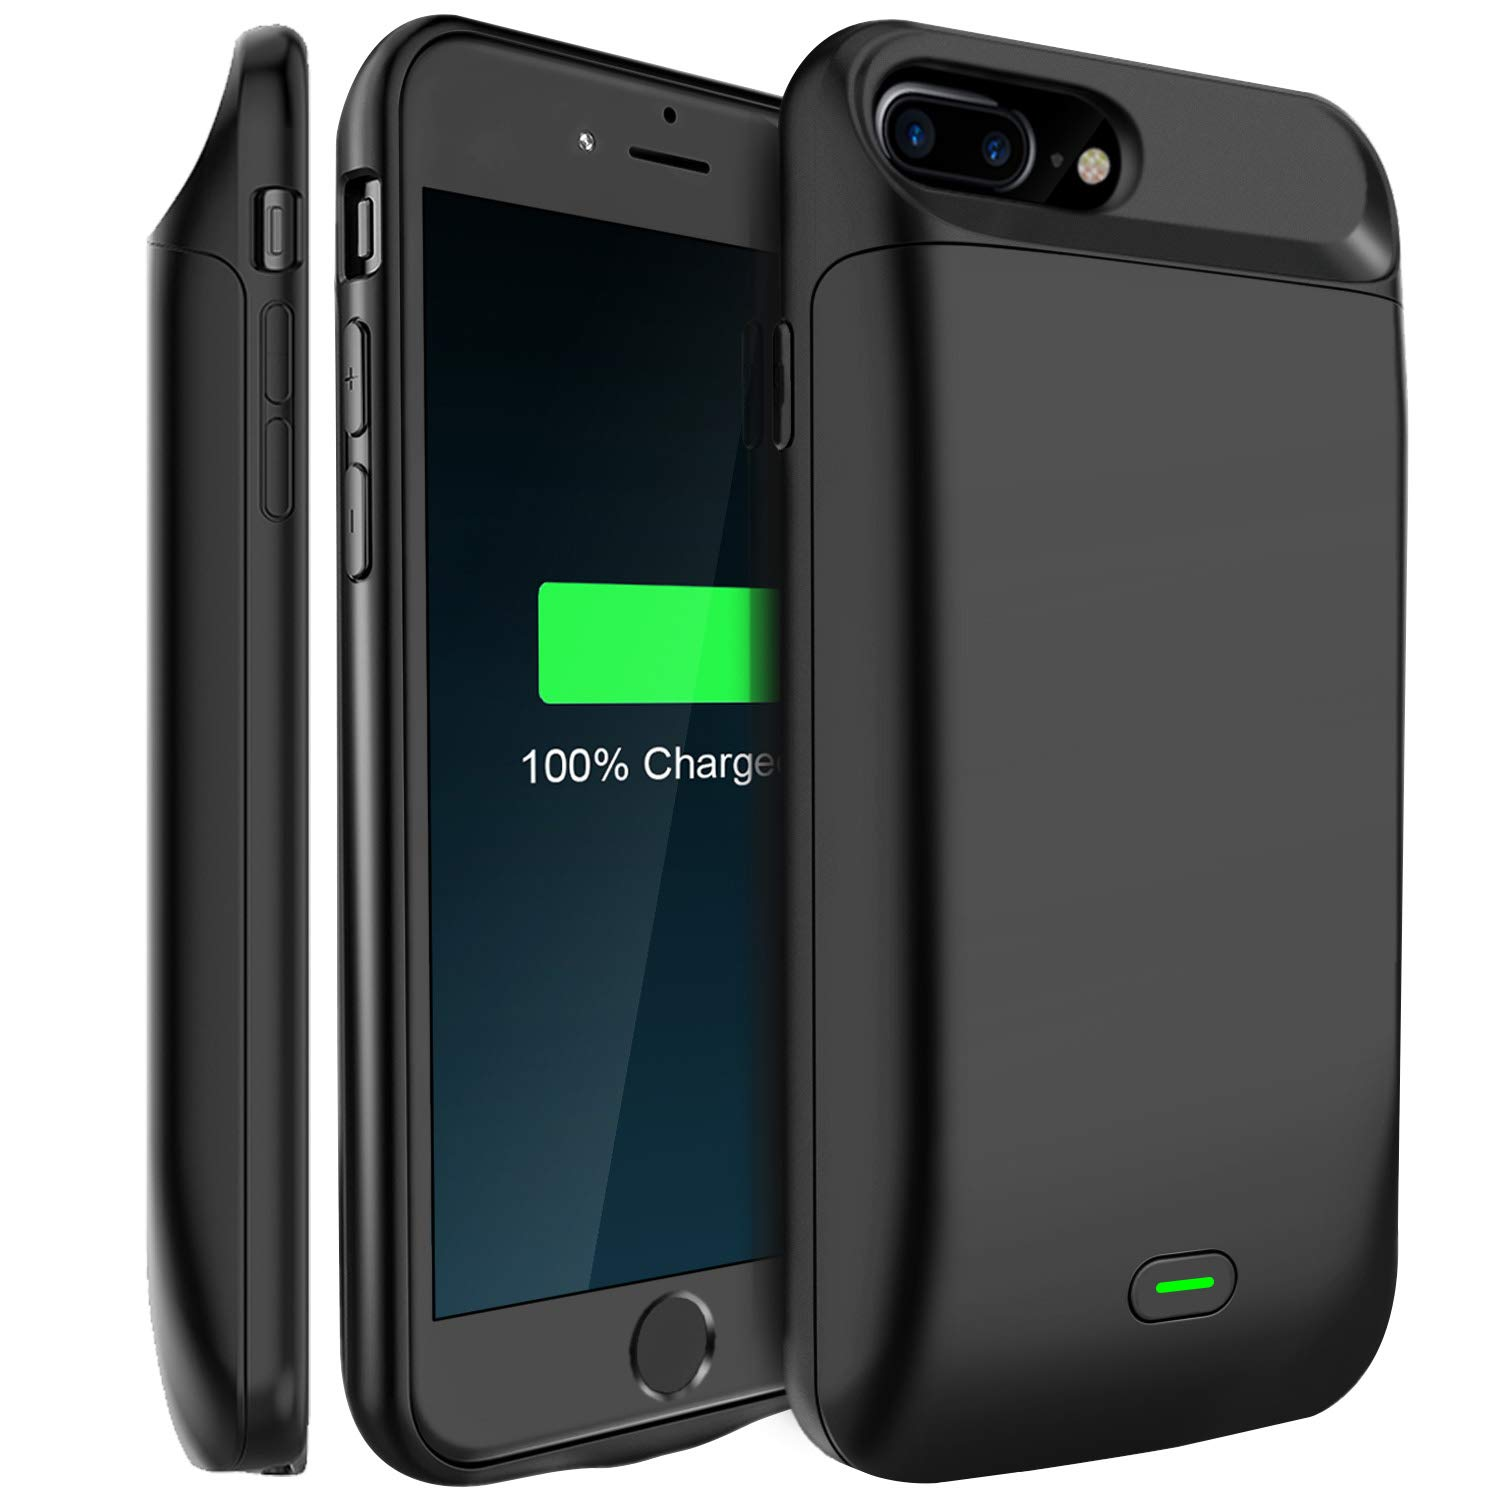 LoHi Battery Case, for iPhone 8 Plus / 7 Plus / 6s Plus / 6 Plus Portable & Protective 7200mAh Capacity Extended Smart Battery Charging Case, Support Headphones, 5.5'' Black by LoHi